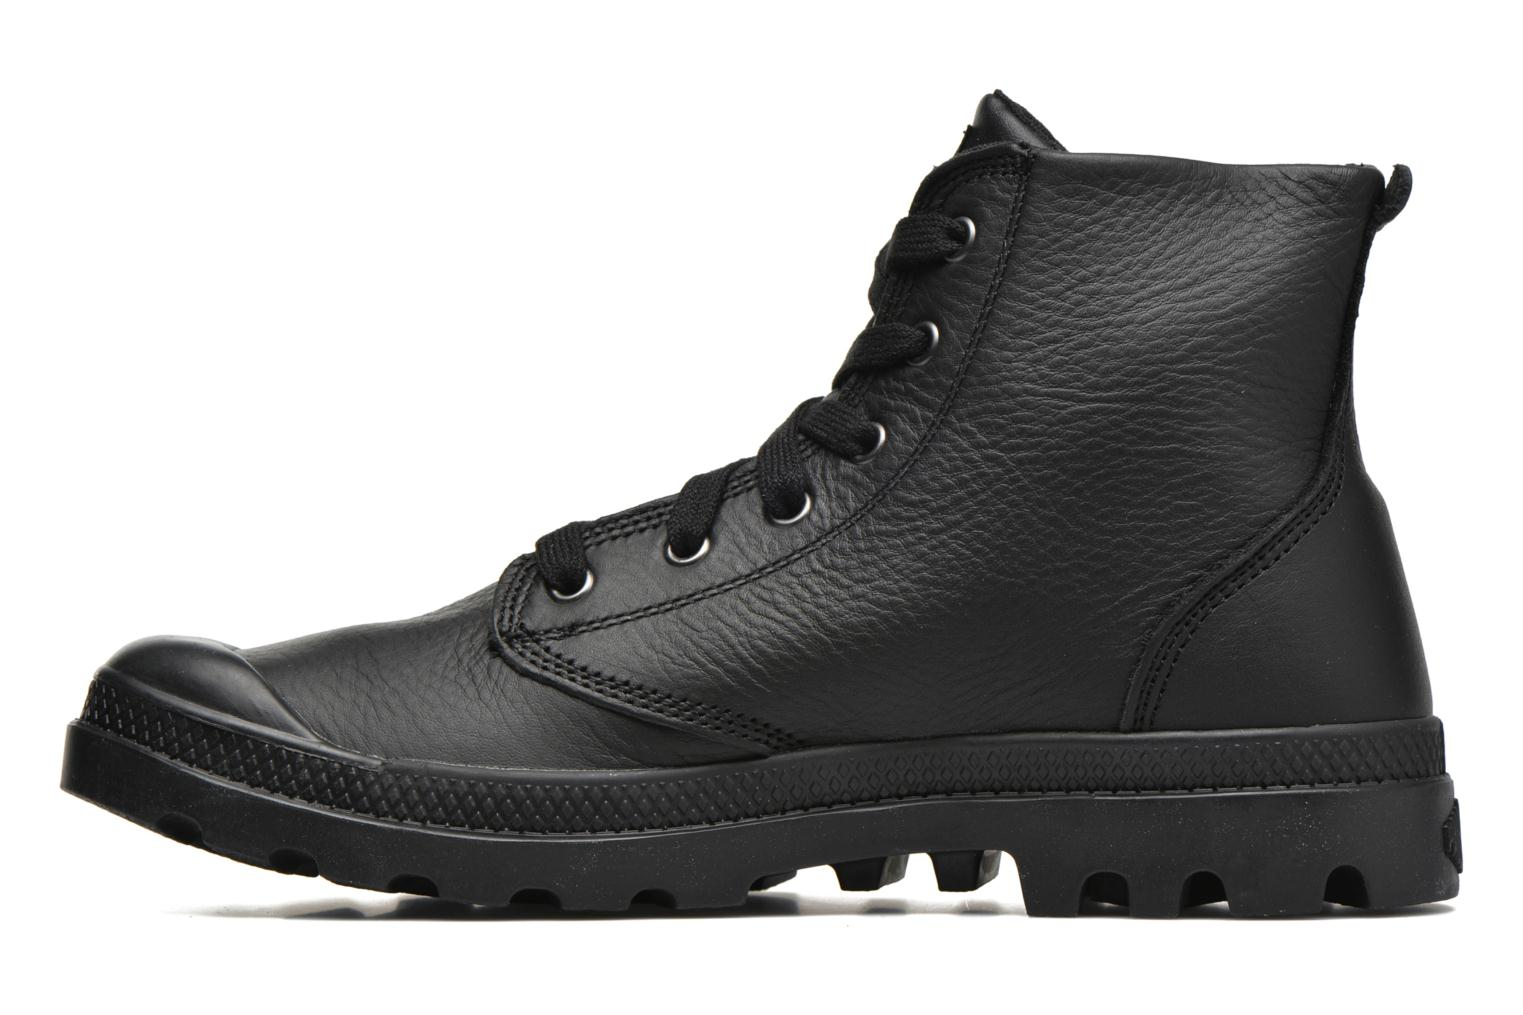 Bottines et boots Palladium Pampa Hi VL H Noir vue face